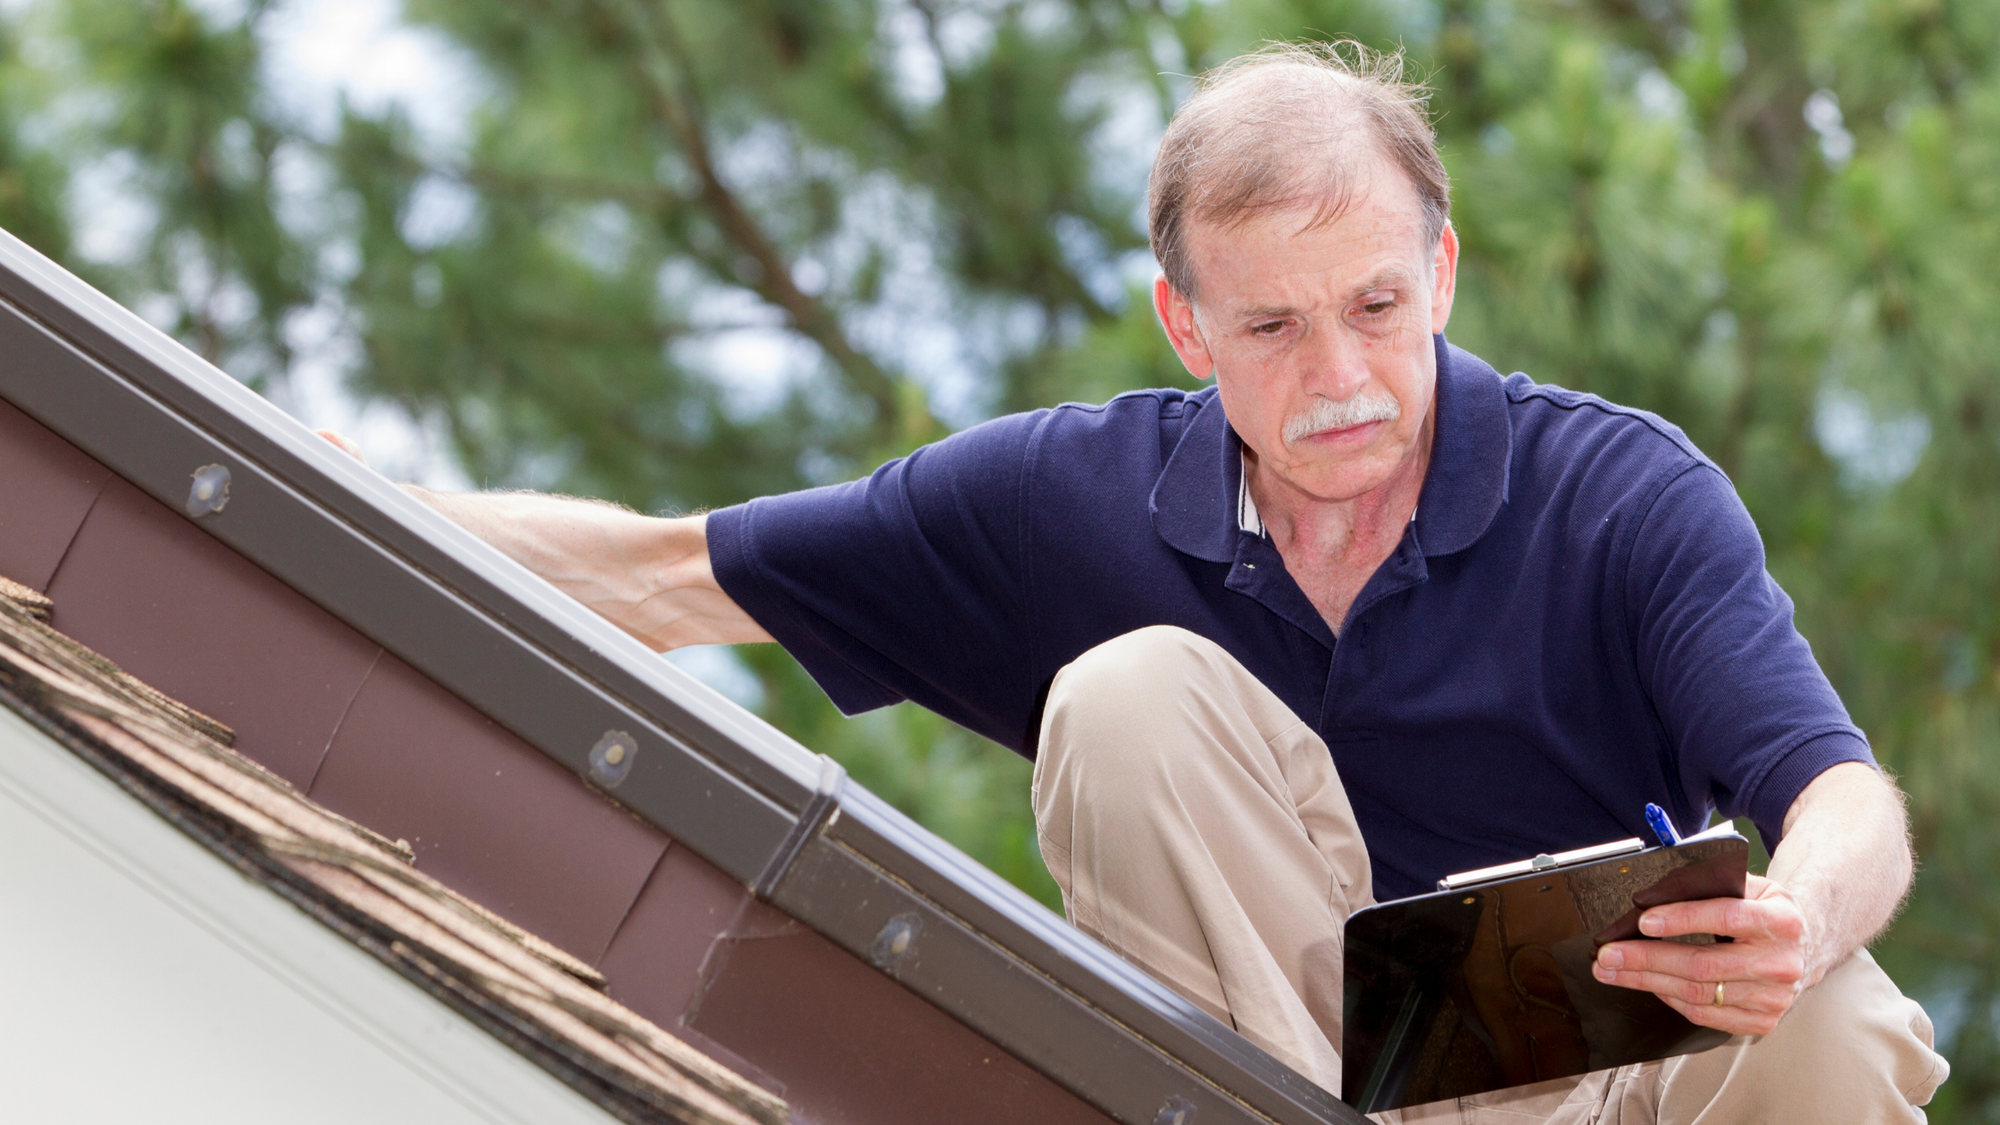 What is an Insurance Adjuster looking at on my roof?